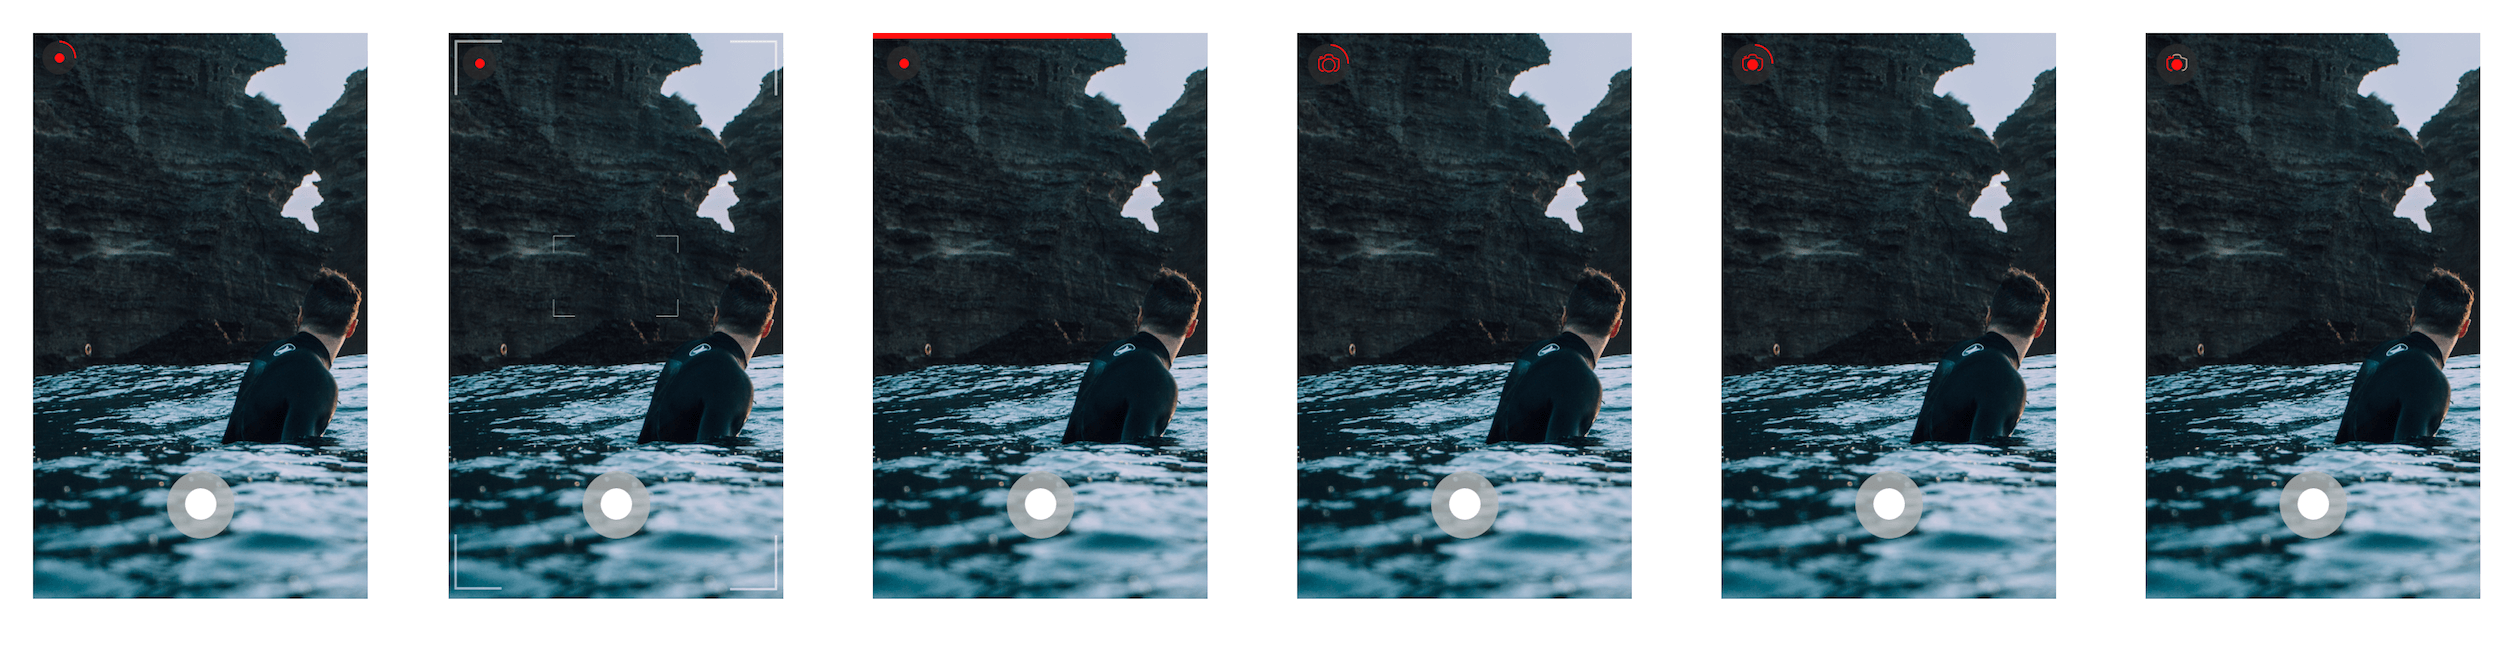 Iterating different options for GIF capture animations.